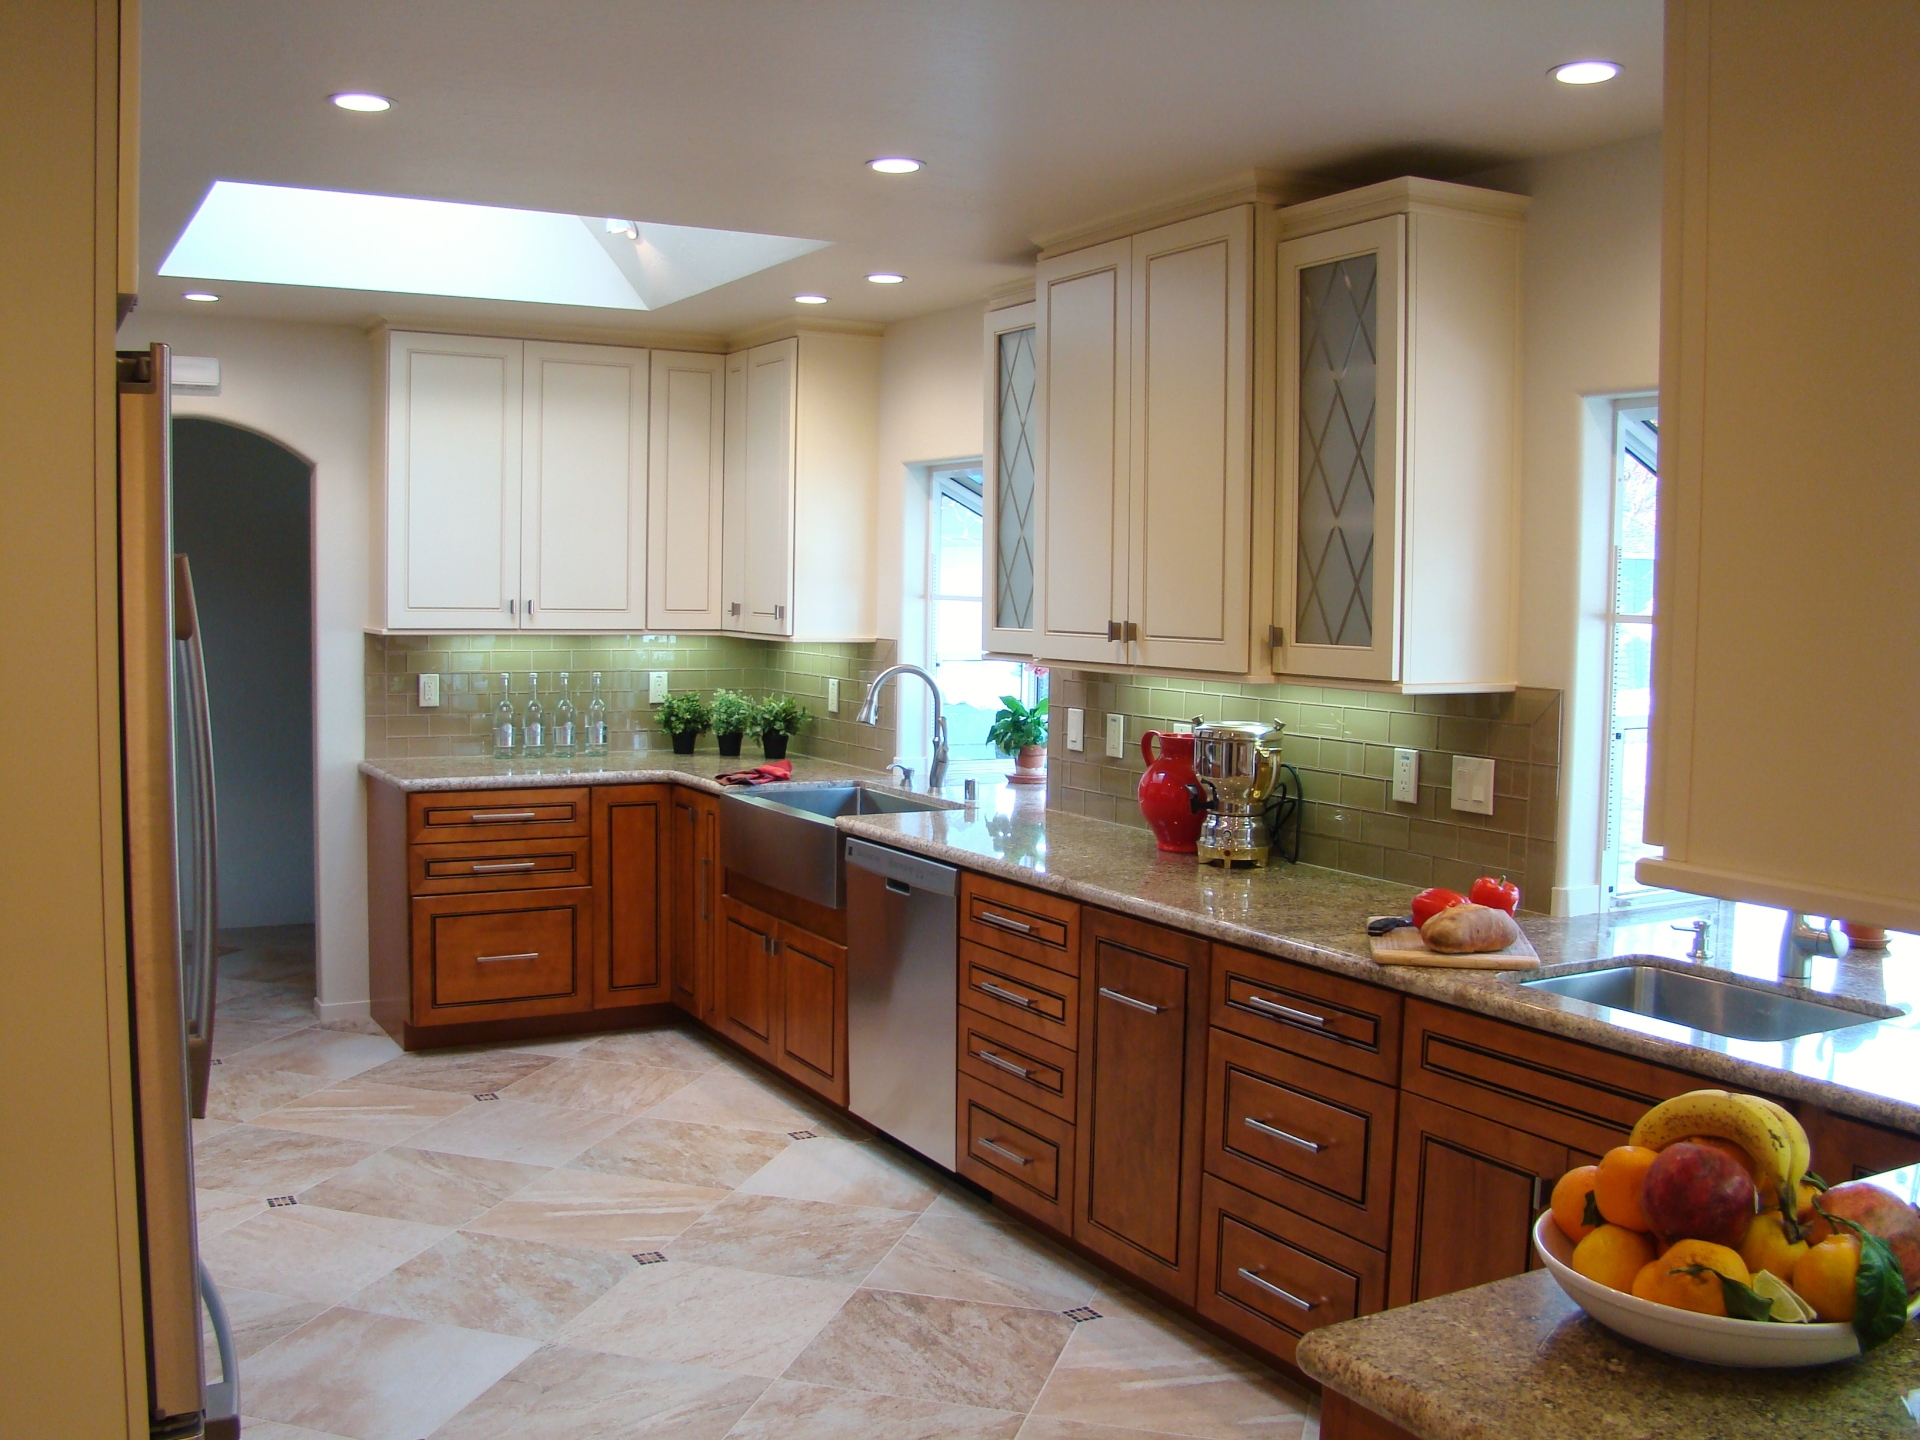 Fiorito Interior Design, interior design, remodel, kitchen, light and dark cabinetry, granite counter, skylight